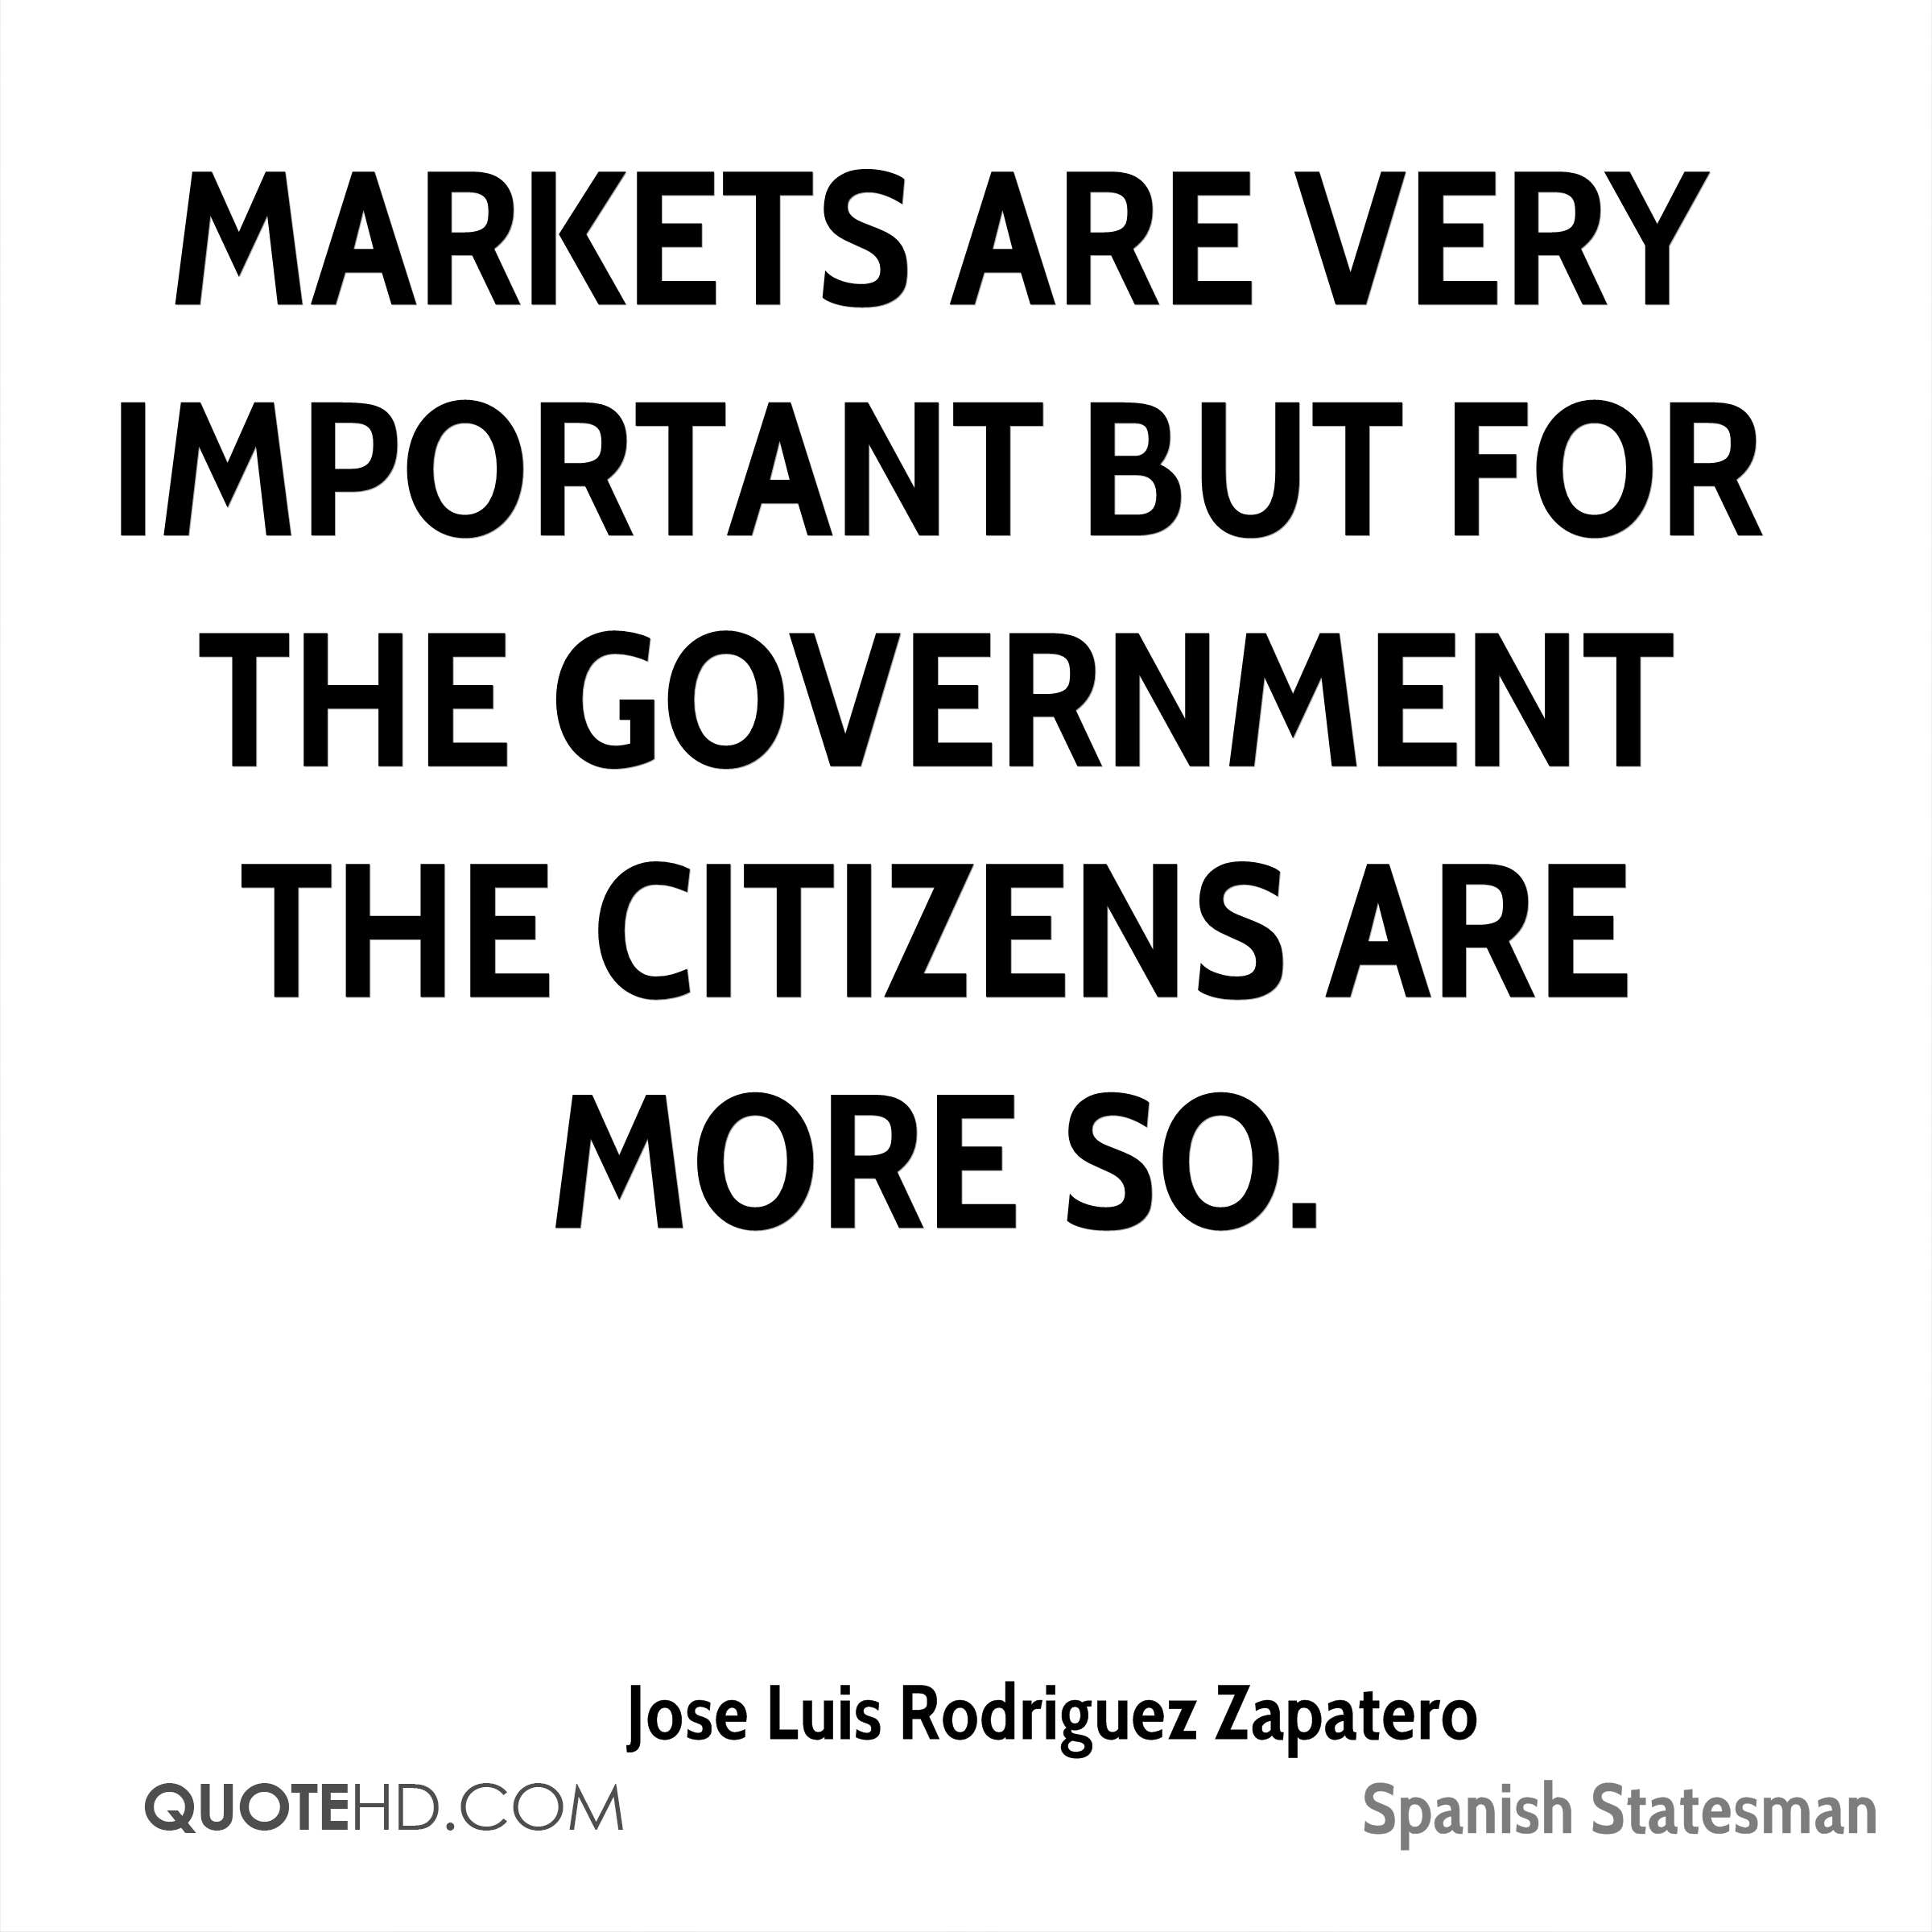 Markets are very important but for the government the citizens are more so.